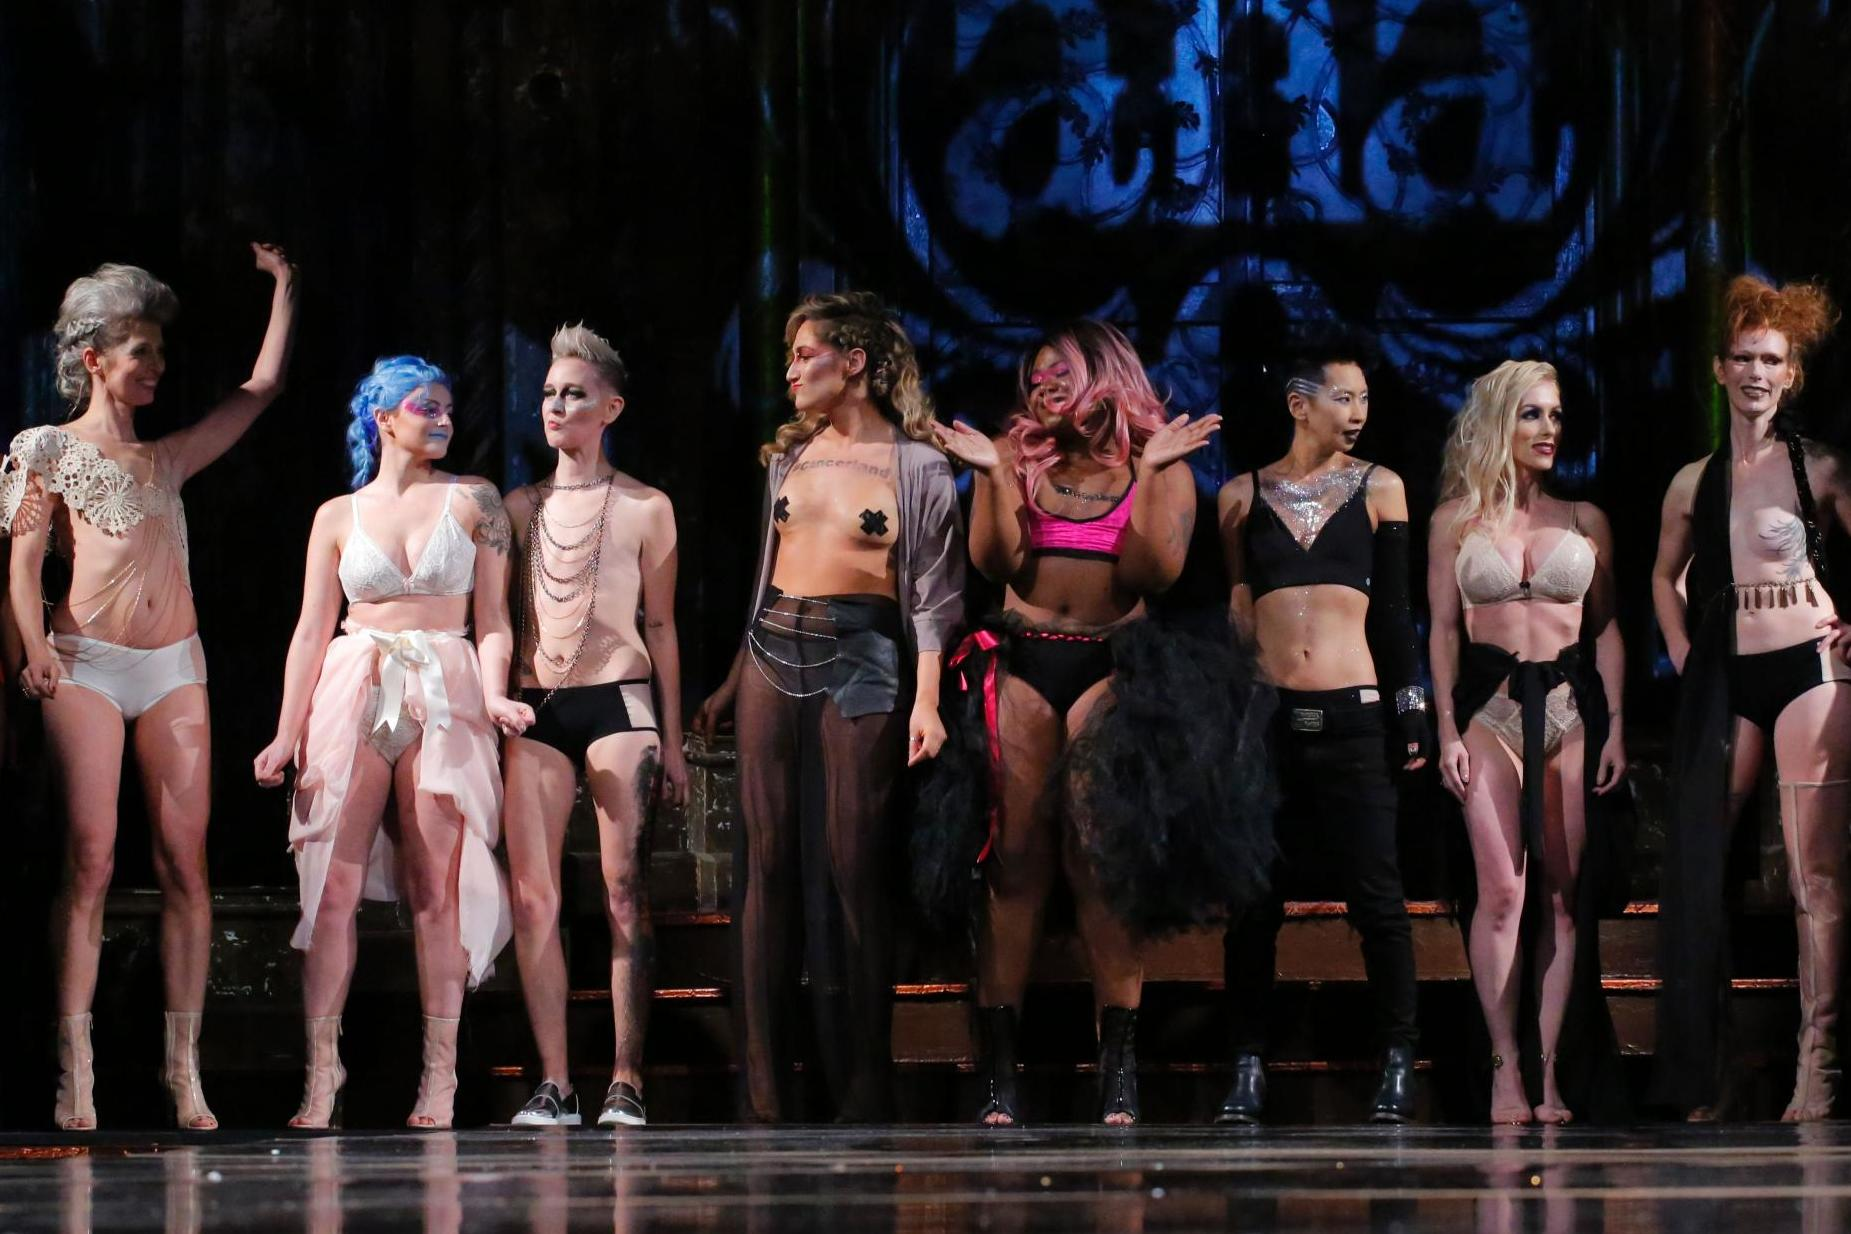 Breast cancer survivors bare surgical scars at New York Fashion Week to model lingerie for mastectomy patients